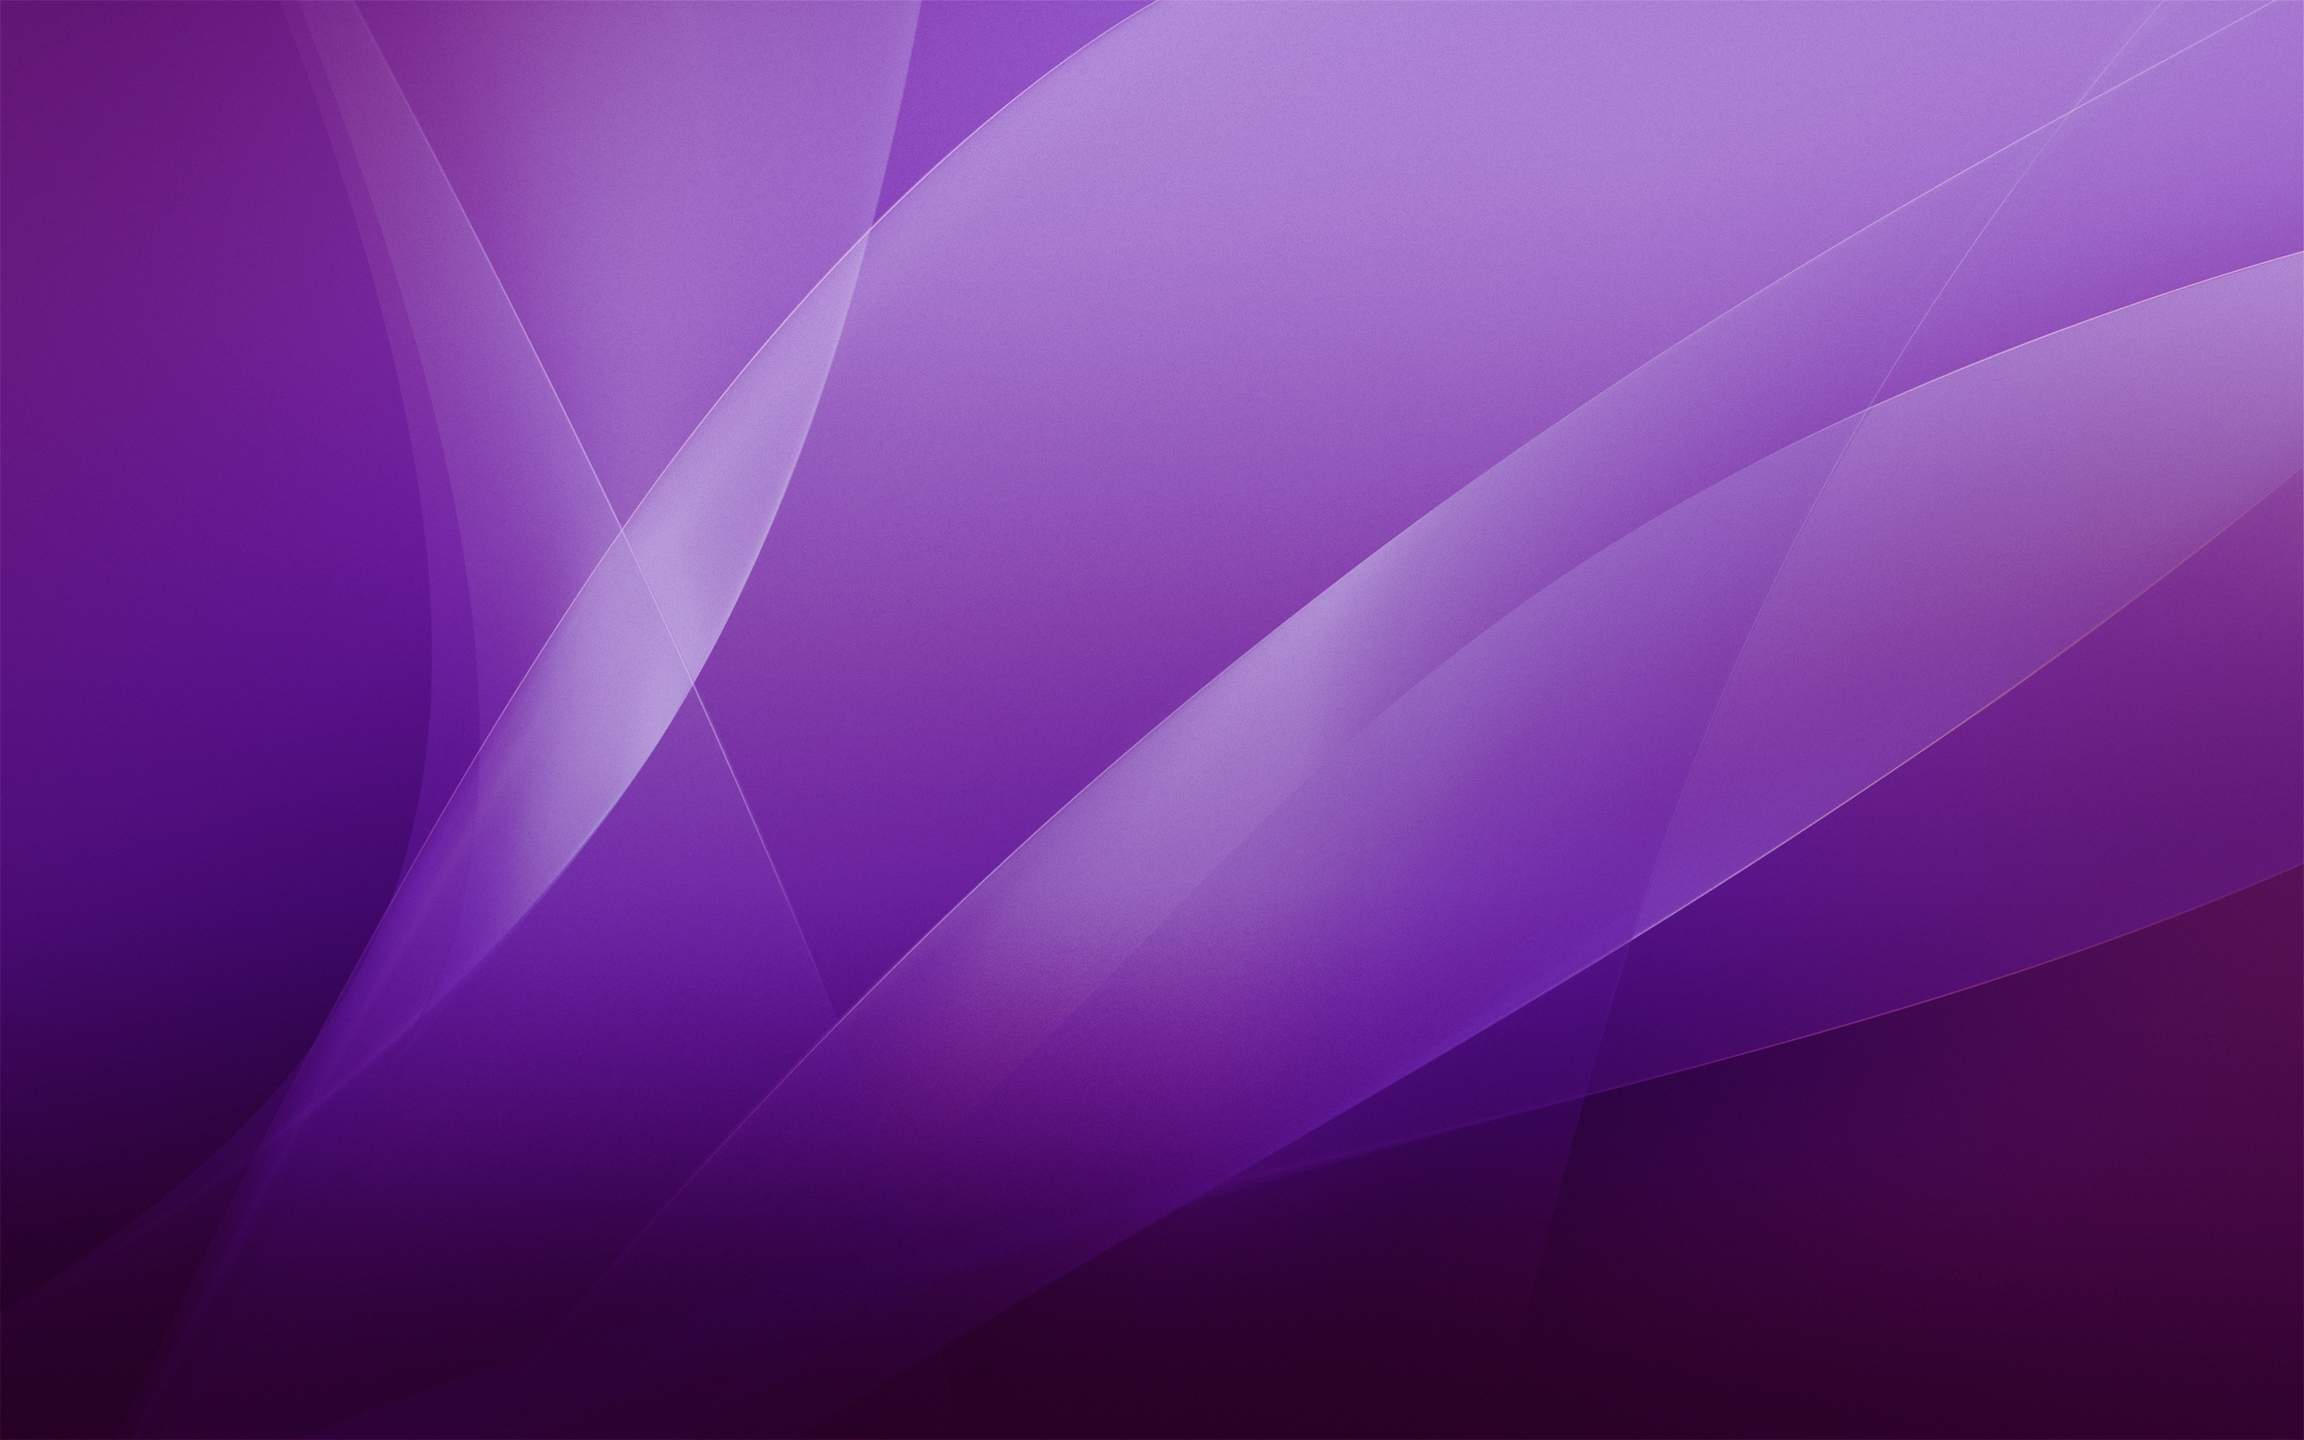 Descargar Zedge Gratis (@zedgegratis) Cover Image